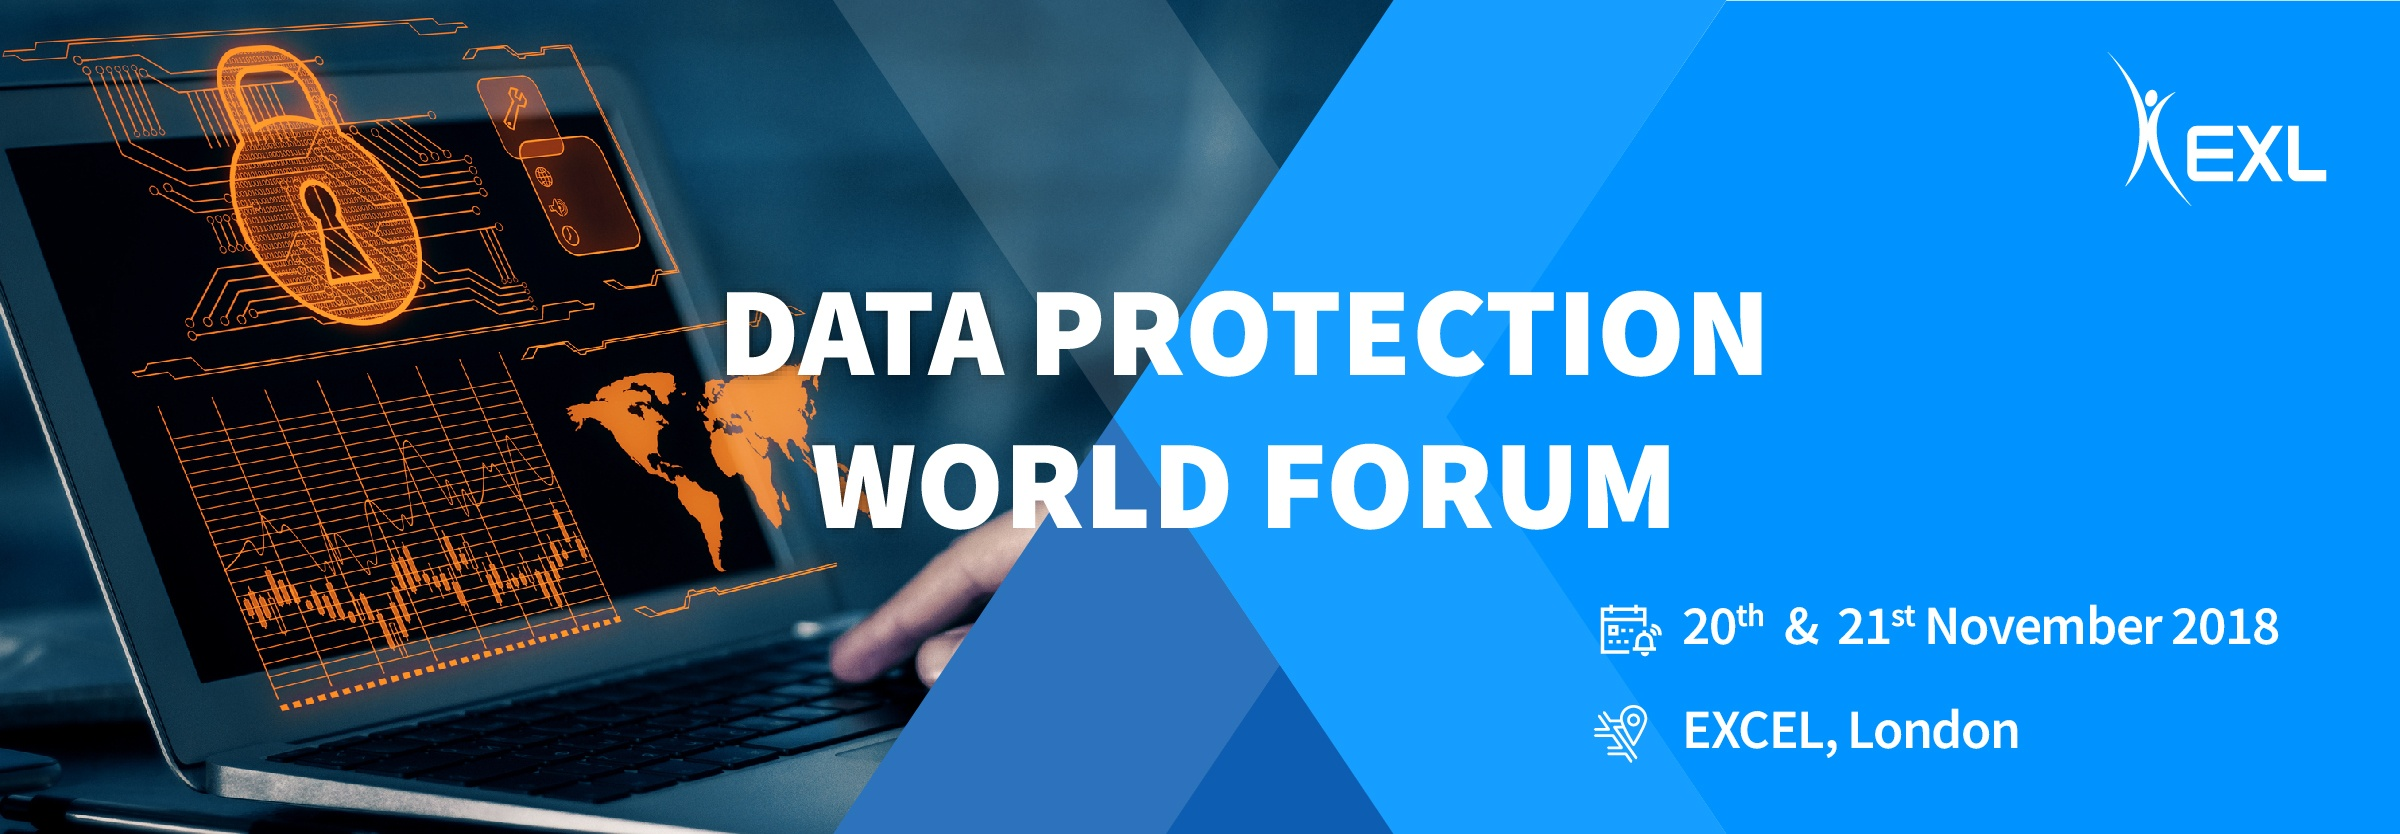 DATA PROTECTION WORLD FORUM-01